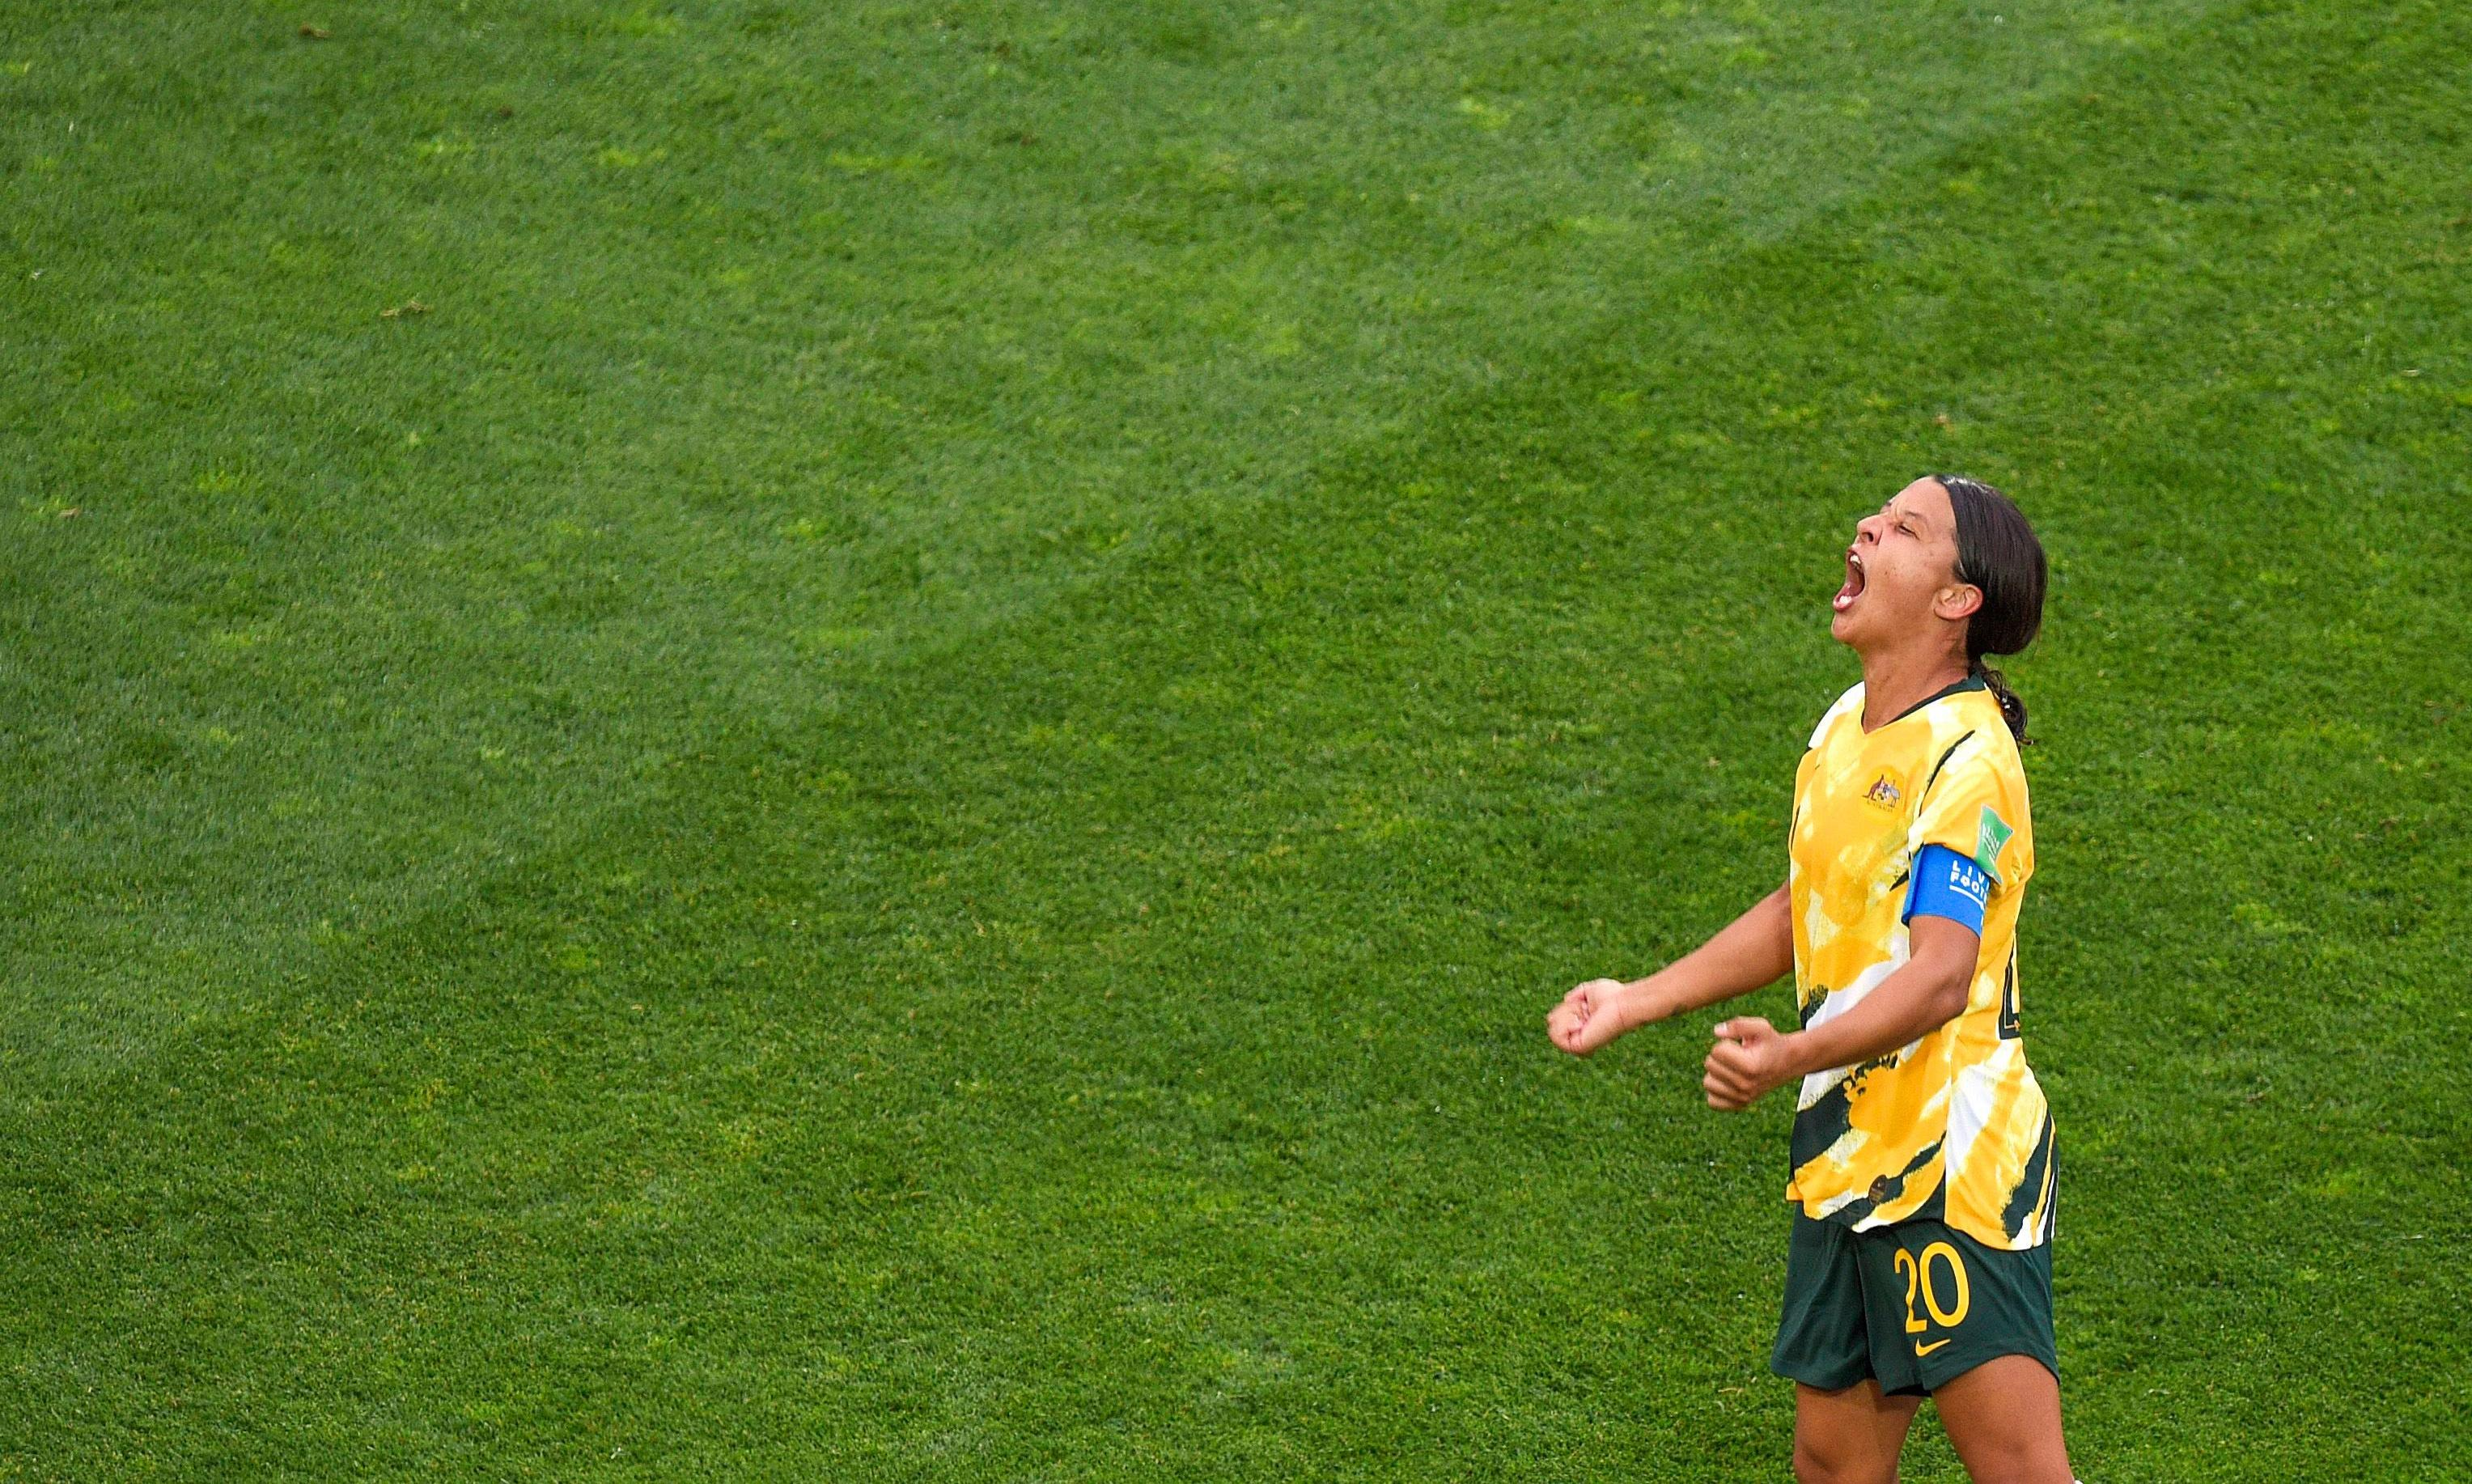 Matildas show resilience in face of adversity both on and off the pitch